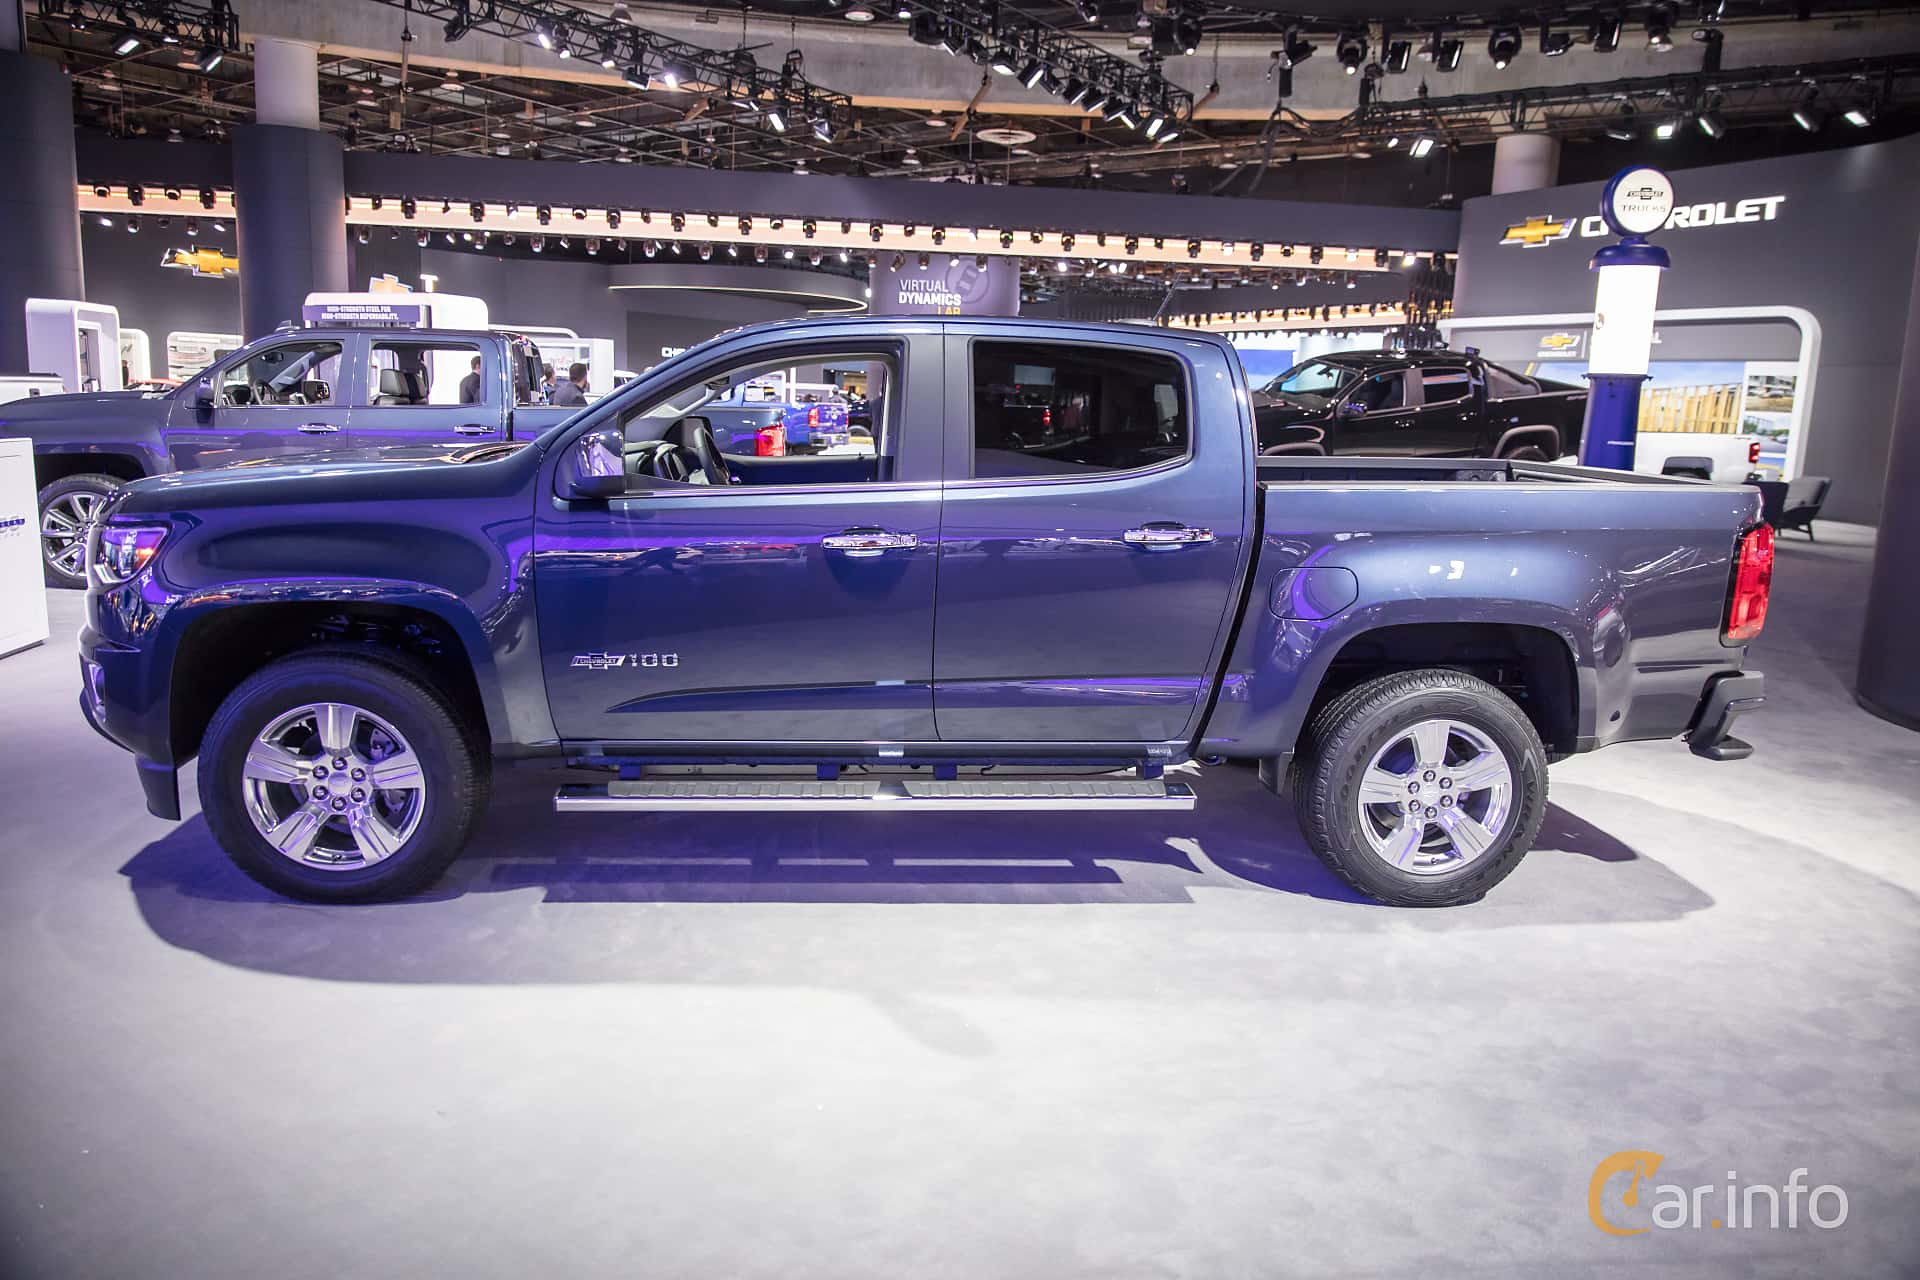 Chevrolet Colorado Crew Cab 3.6 V6 4WD Hydra-Matic, 313hp, 2018 at North American International Auto Show 2018